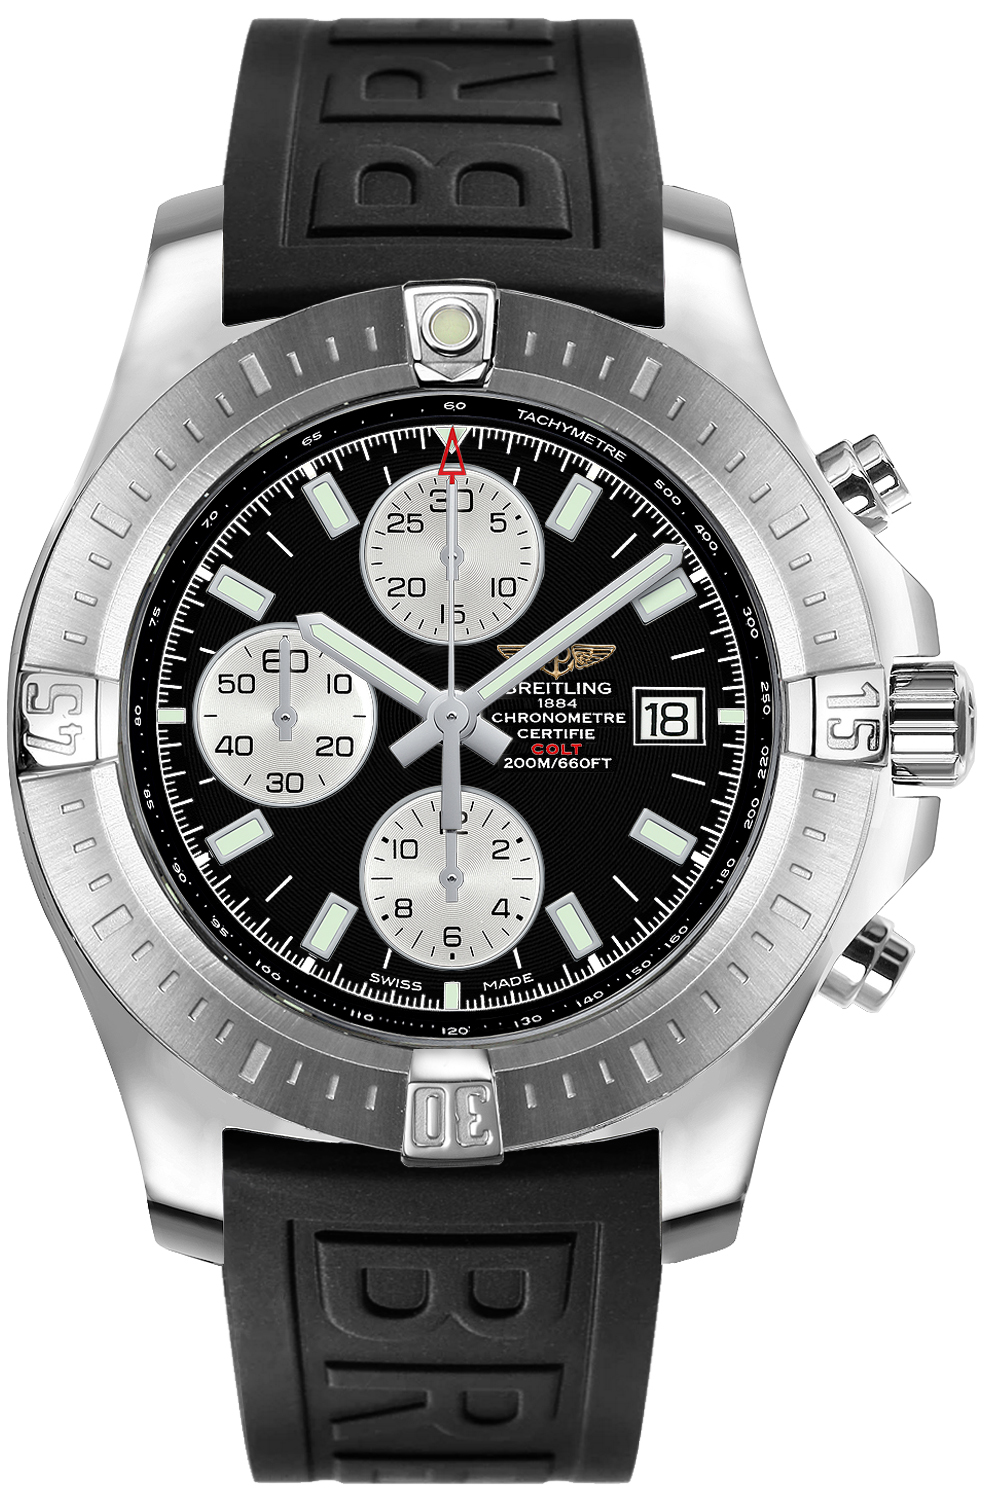 a1338811 bd83 152s brand new breitling colt mens 44mm automatic chronograph watch. Black Bedroom Furniture Sets. Home Design Ideas